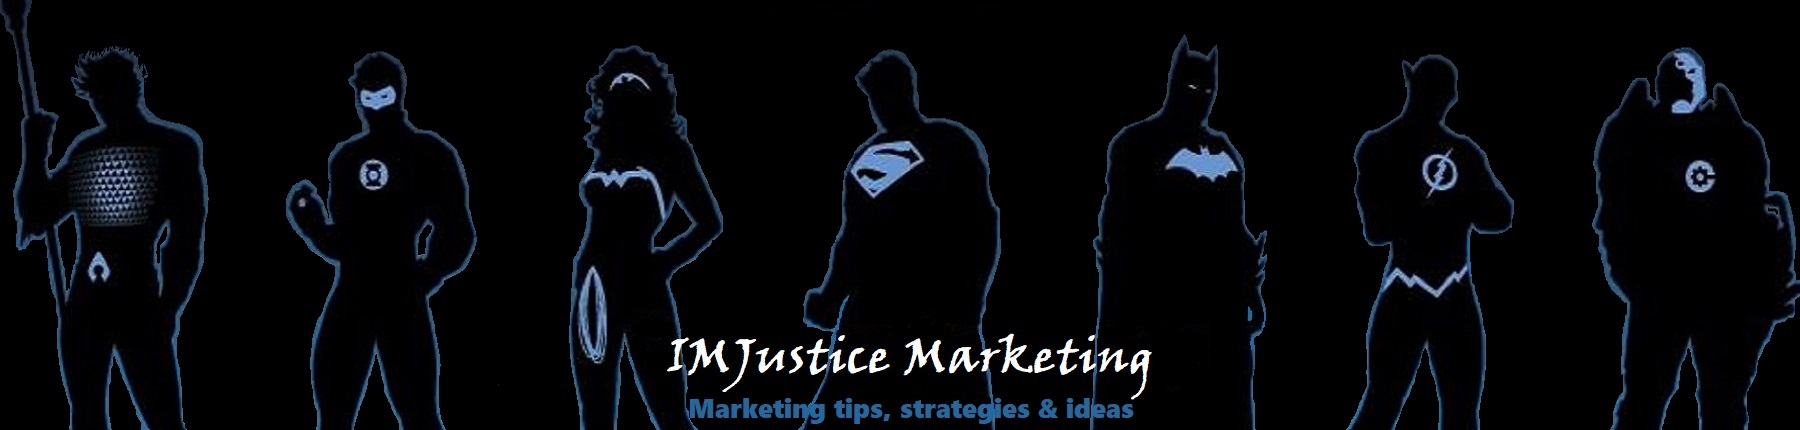 IMJustice Marketing